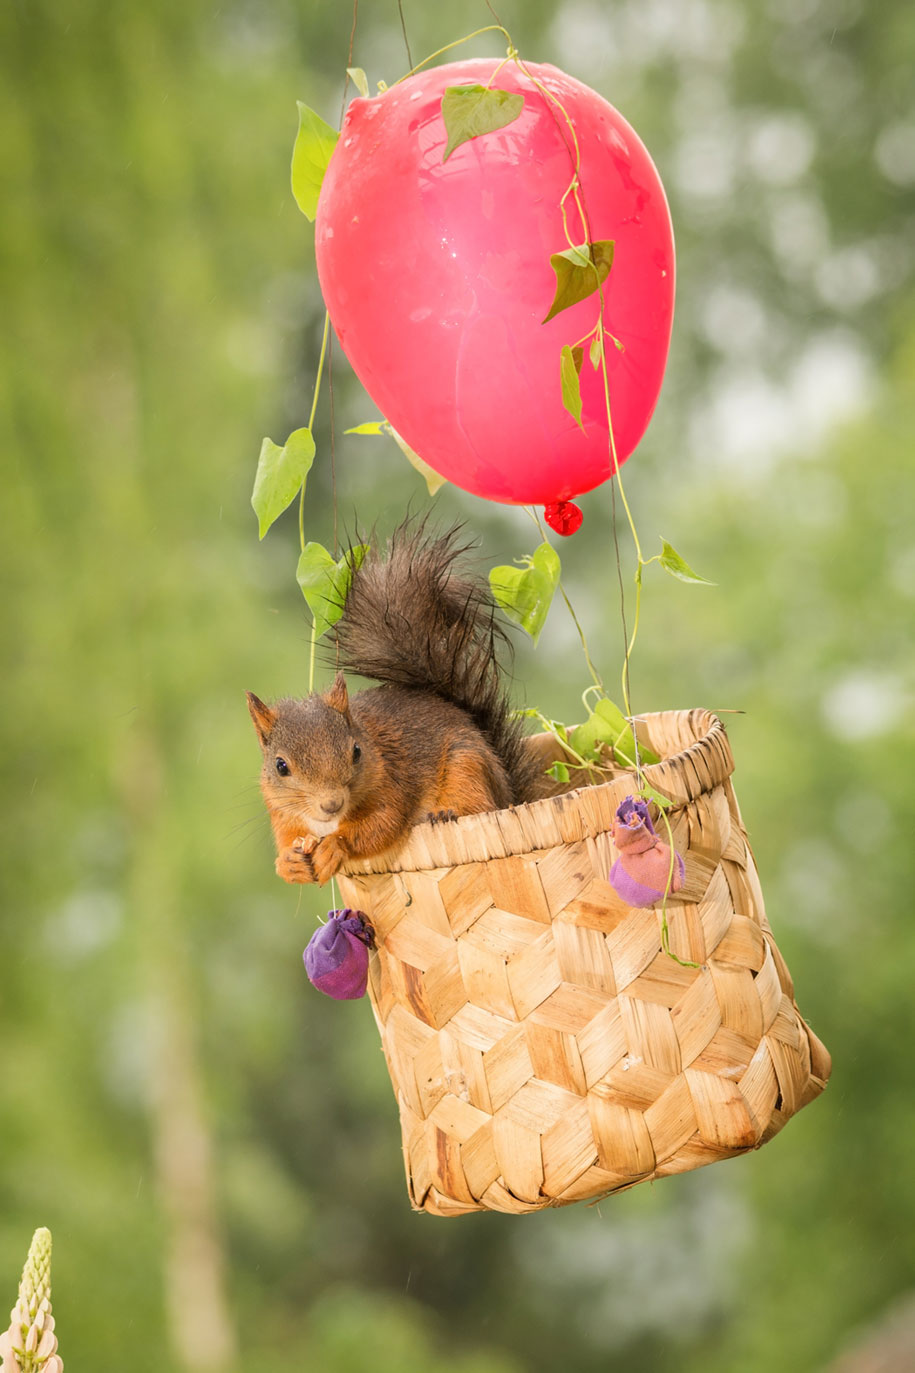 nature-animal-photography-backyard-squirrels-geert-weggen-17